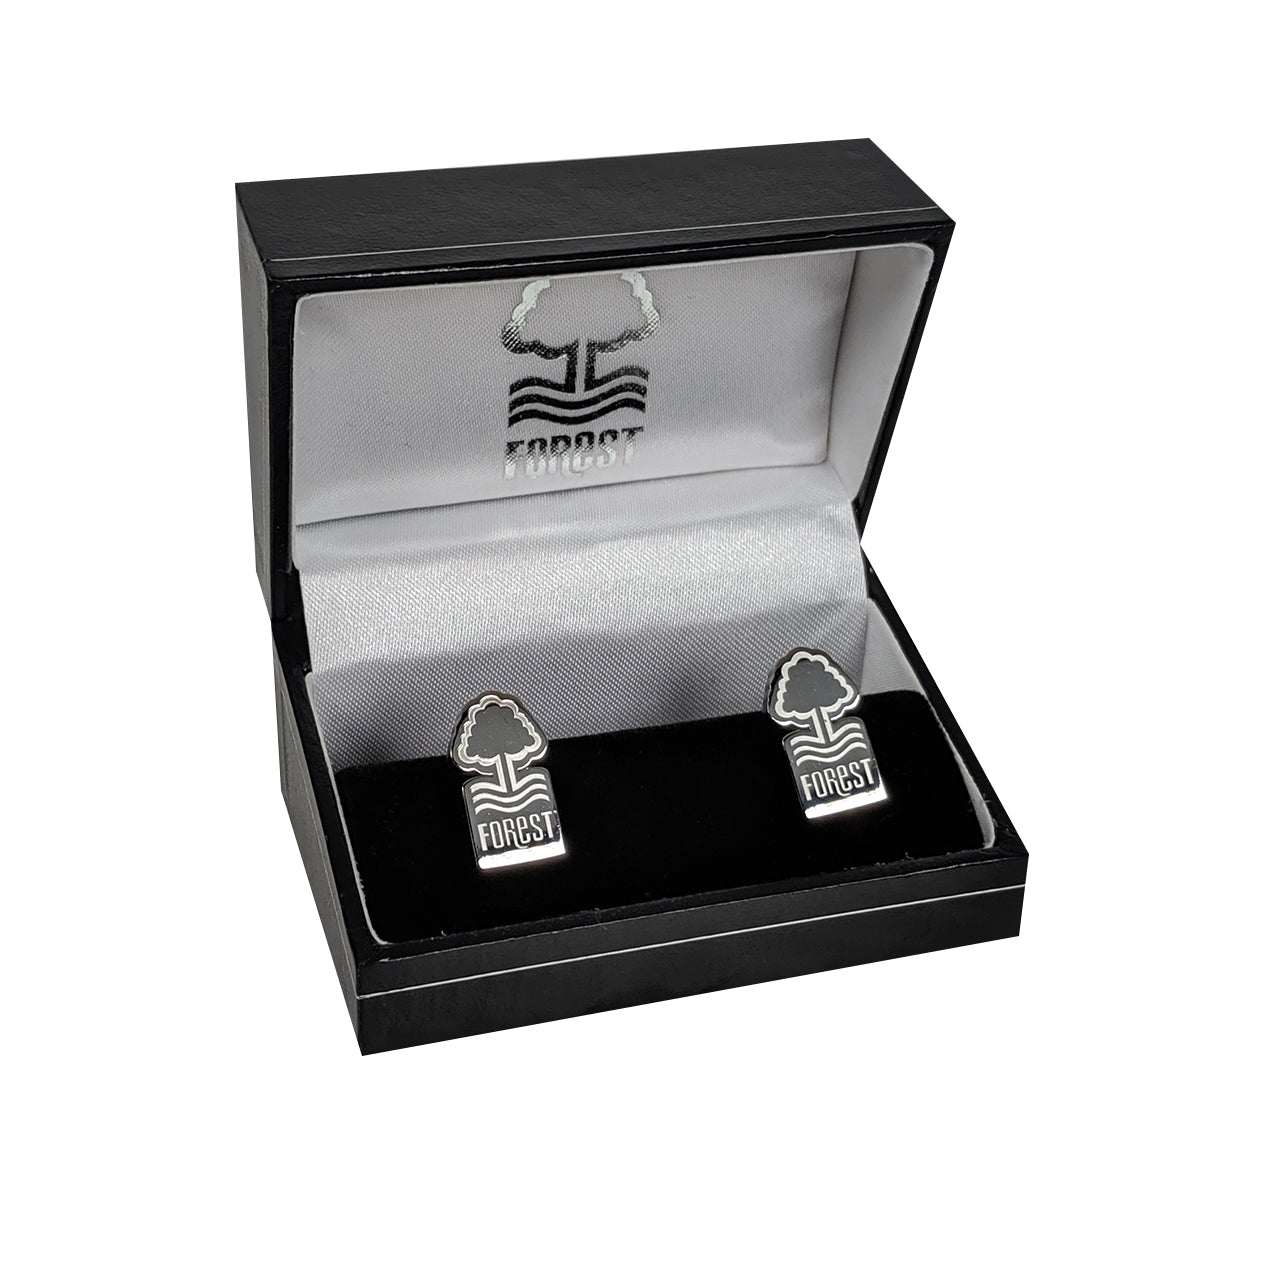 NFFC Stainless Steel Crest Cufflinks